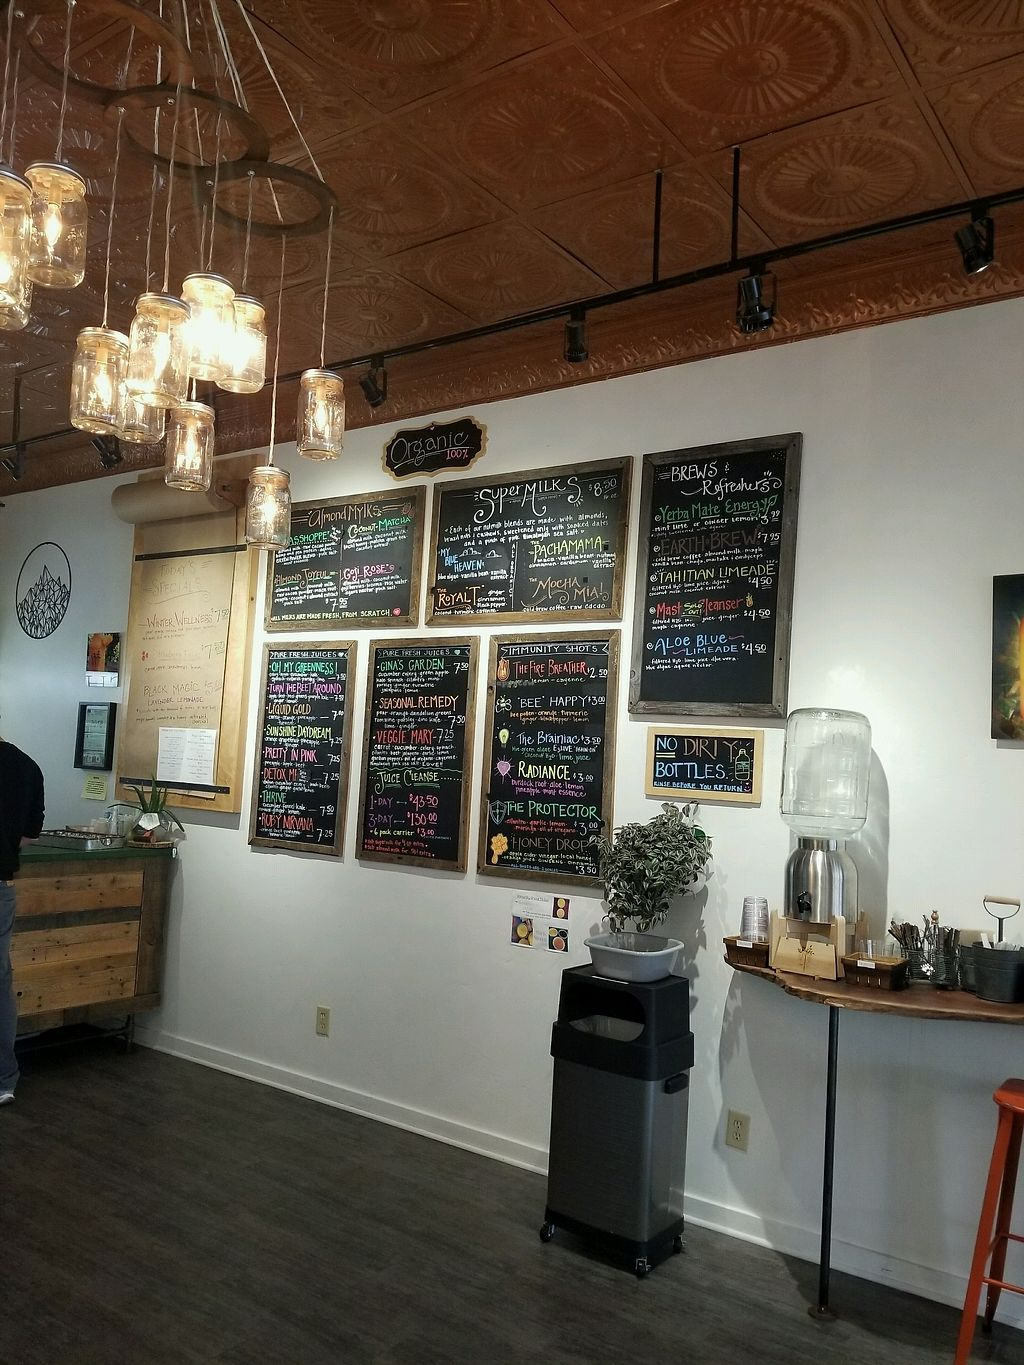 """Photo of Live Life Juice Co  by <a href=""""/members/profile/Calimimi"""">Calimimi</a> <br/>juice menu <br/> February 1, 2018  - <a href='/contact/abuse/image/107575/353750'>Report</a>"""